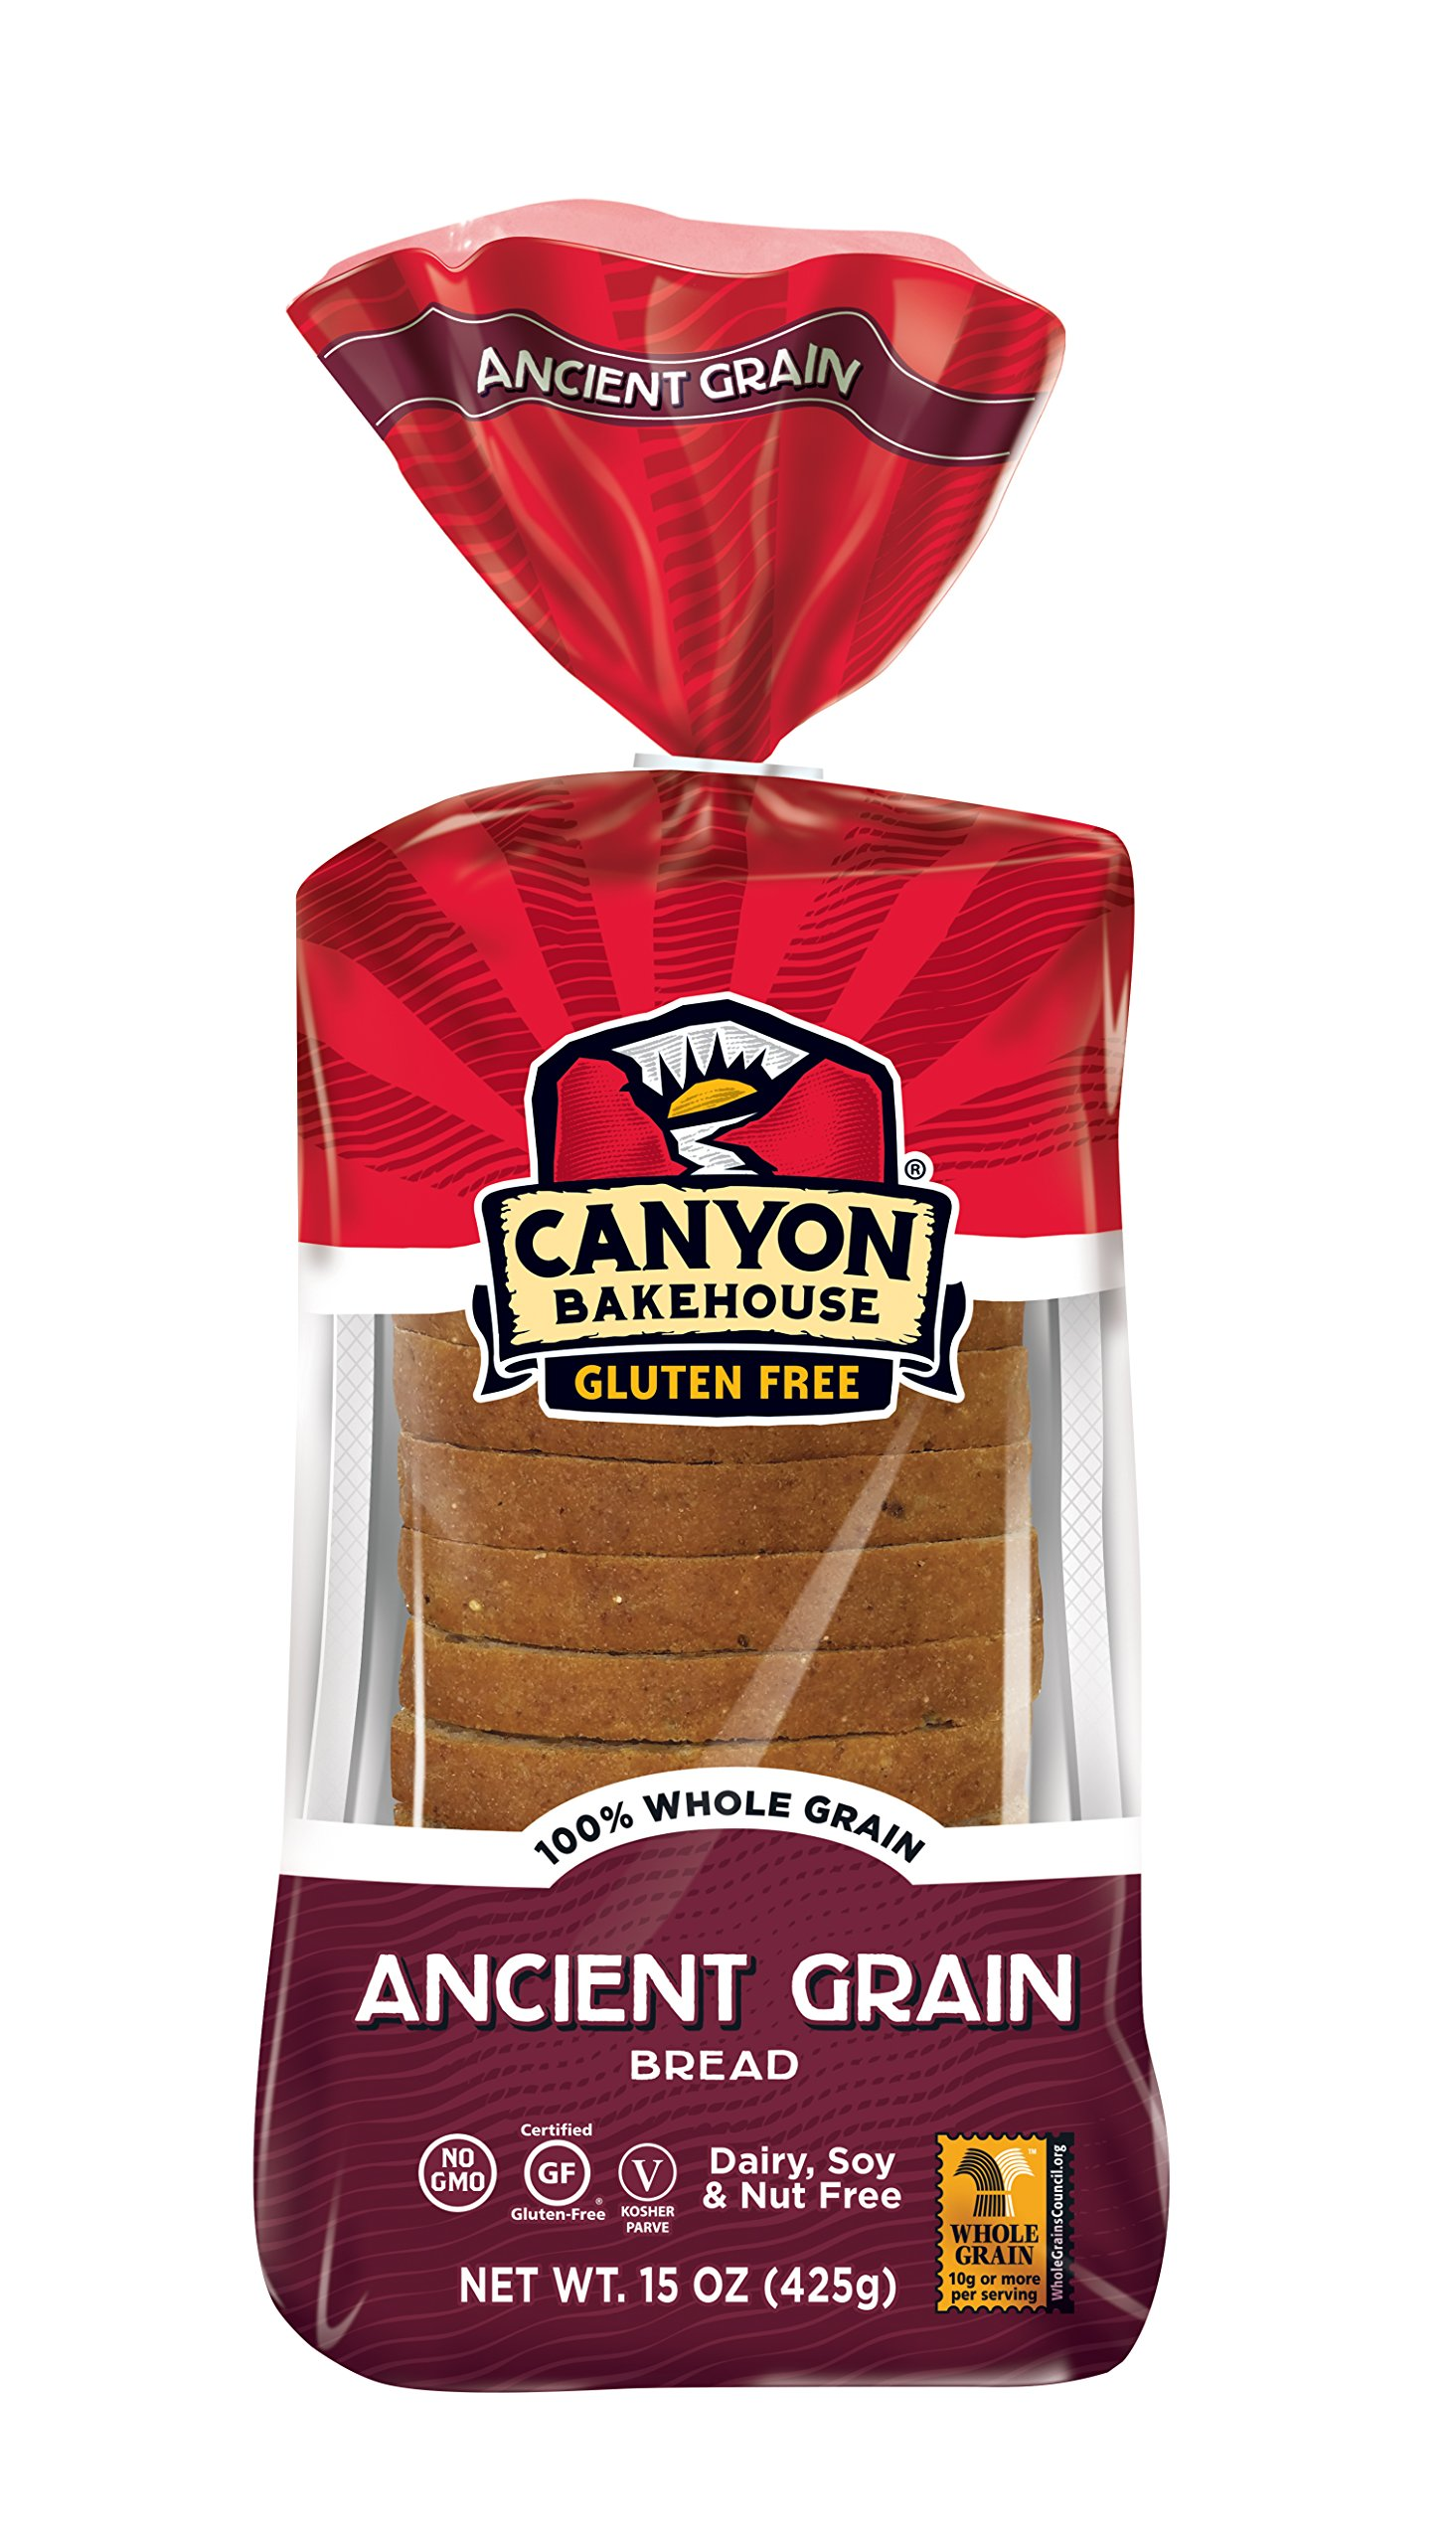 CANYON BAKEHOUSE Ancient Grain Gluten-Free Bread - Case of 6 Loaves by Canyon Bakehouse